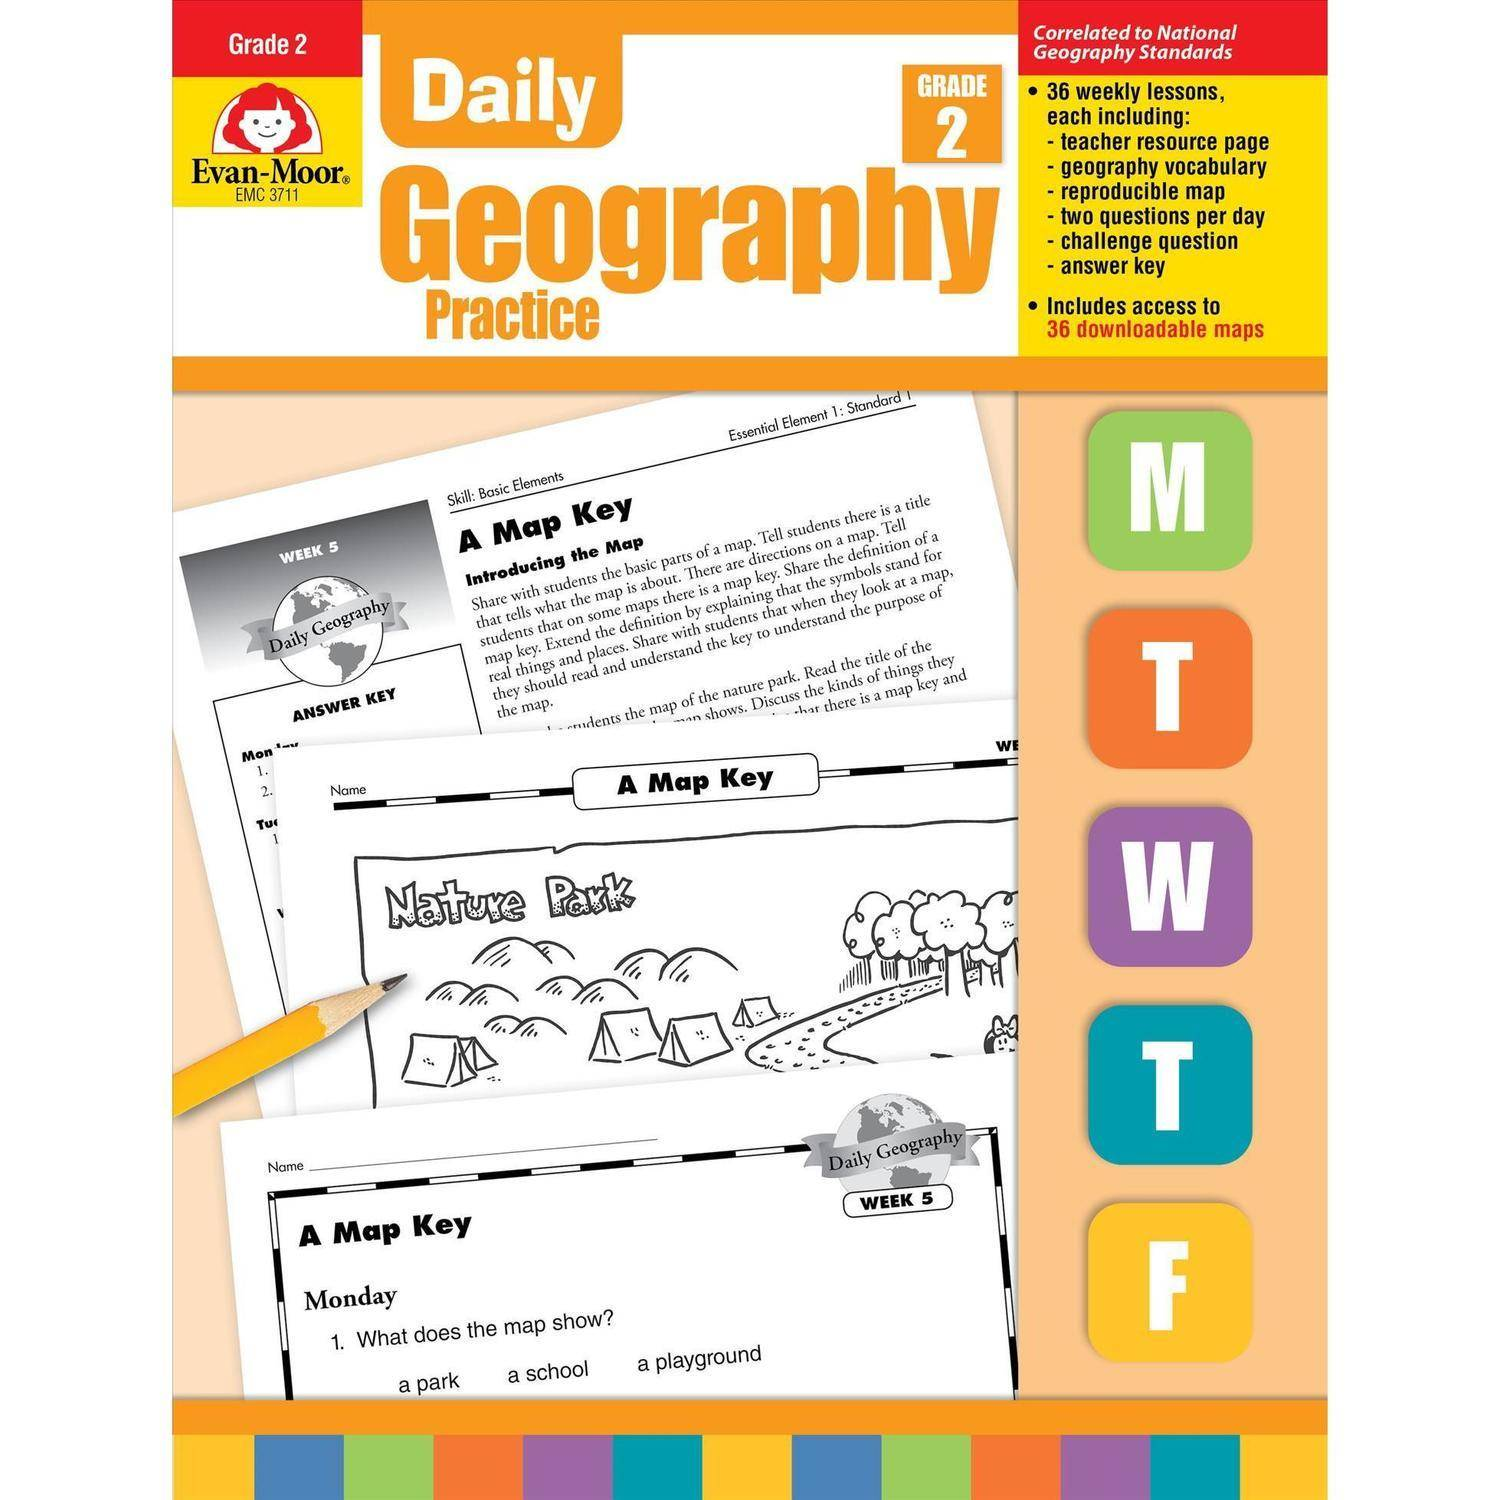 Daily Geography Practice, Grade 2 by Evan-Moor Educational Publishers